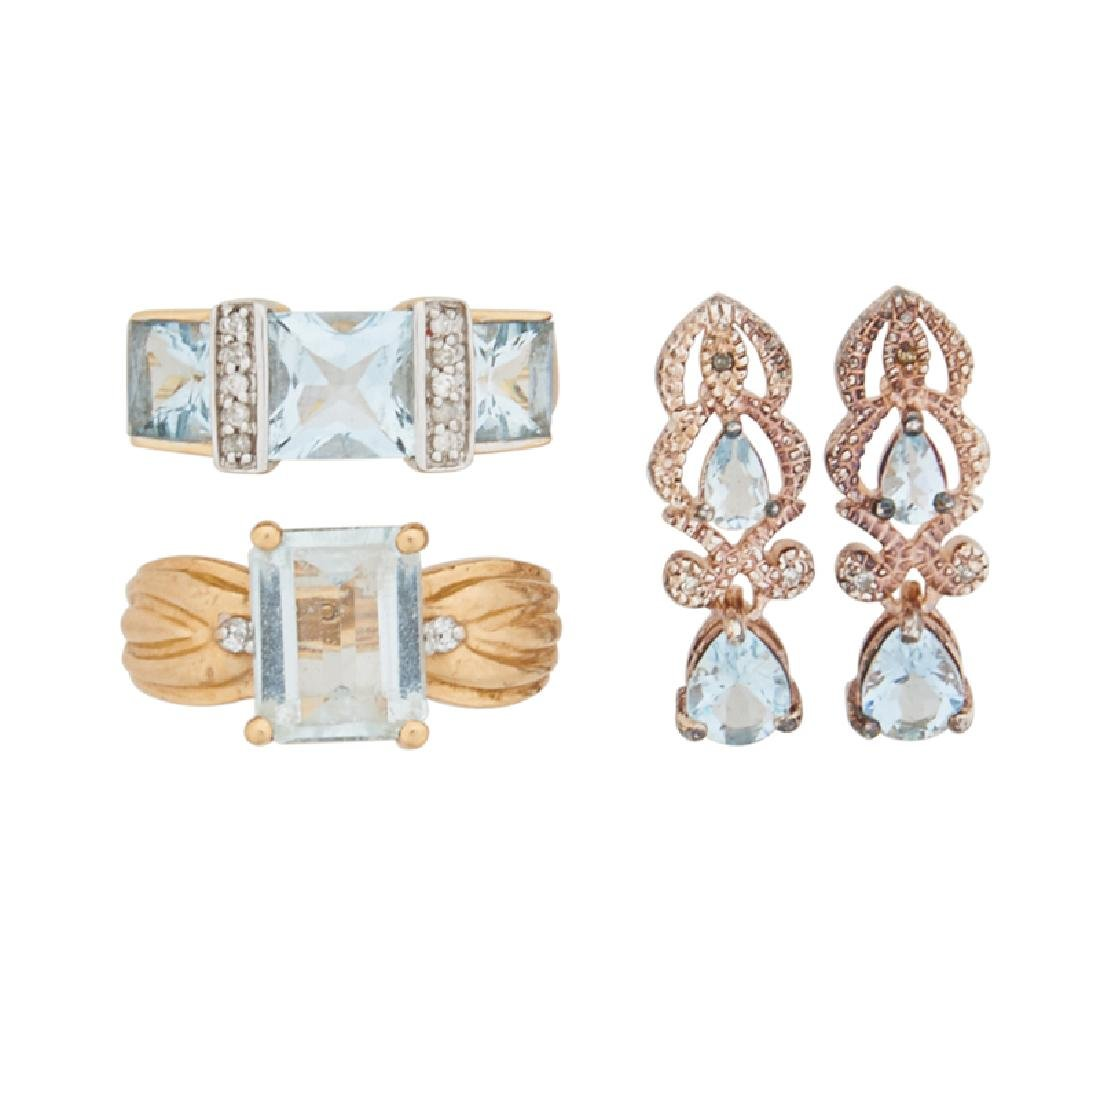 AQUAMARINE GOLD OR STERLING JEWELRY, INCL. DIAMONDS